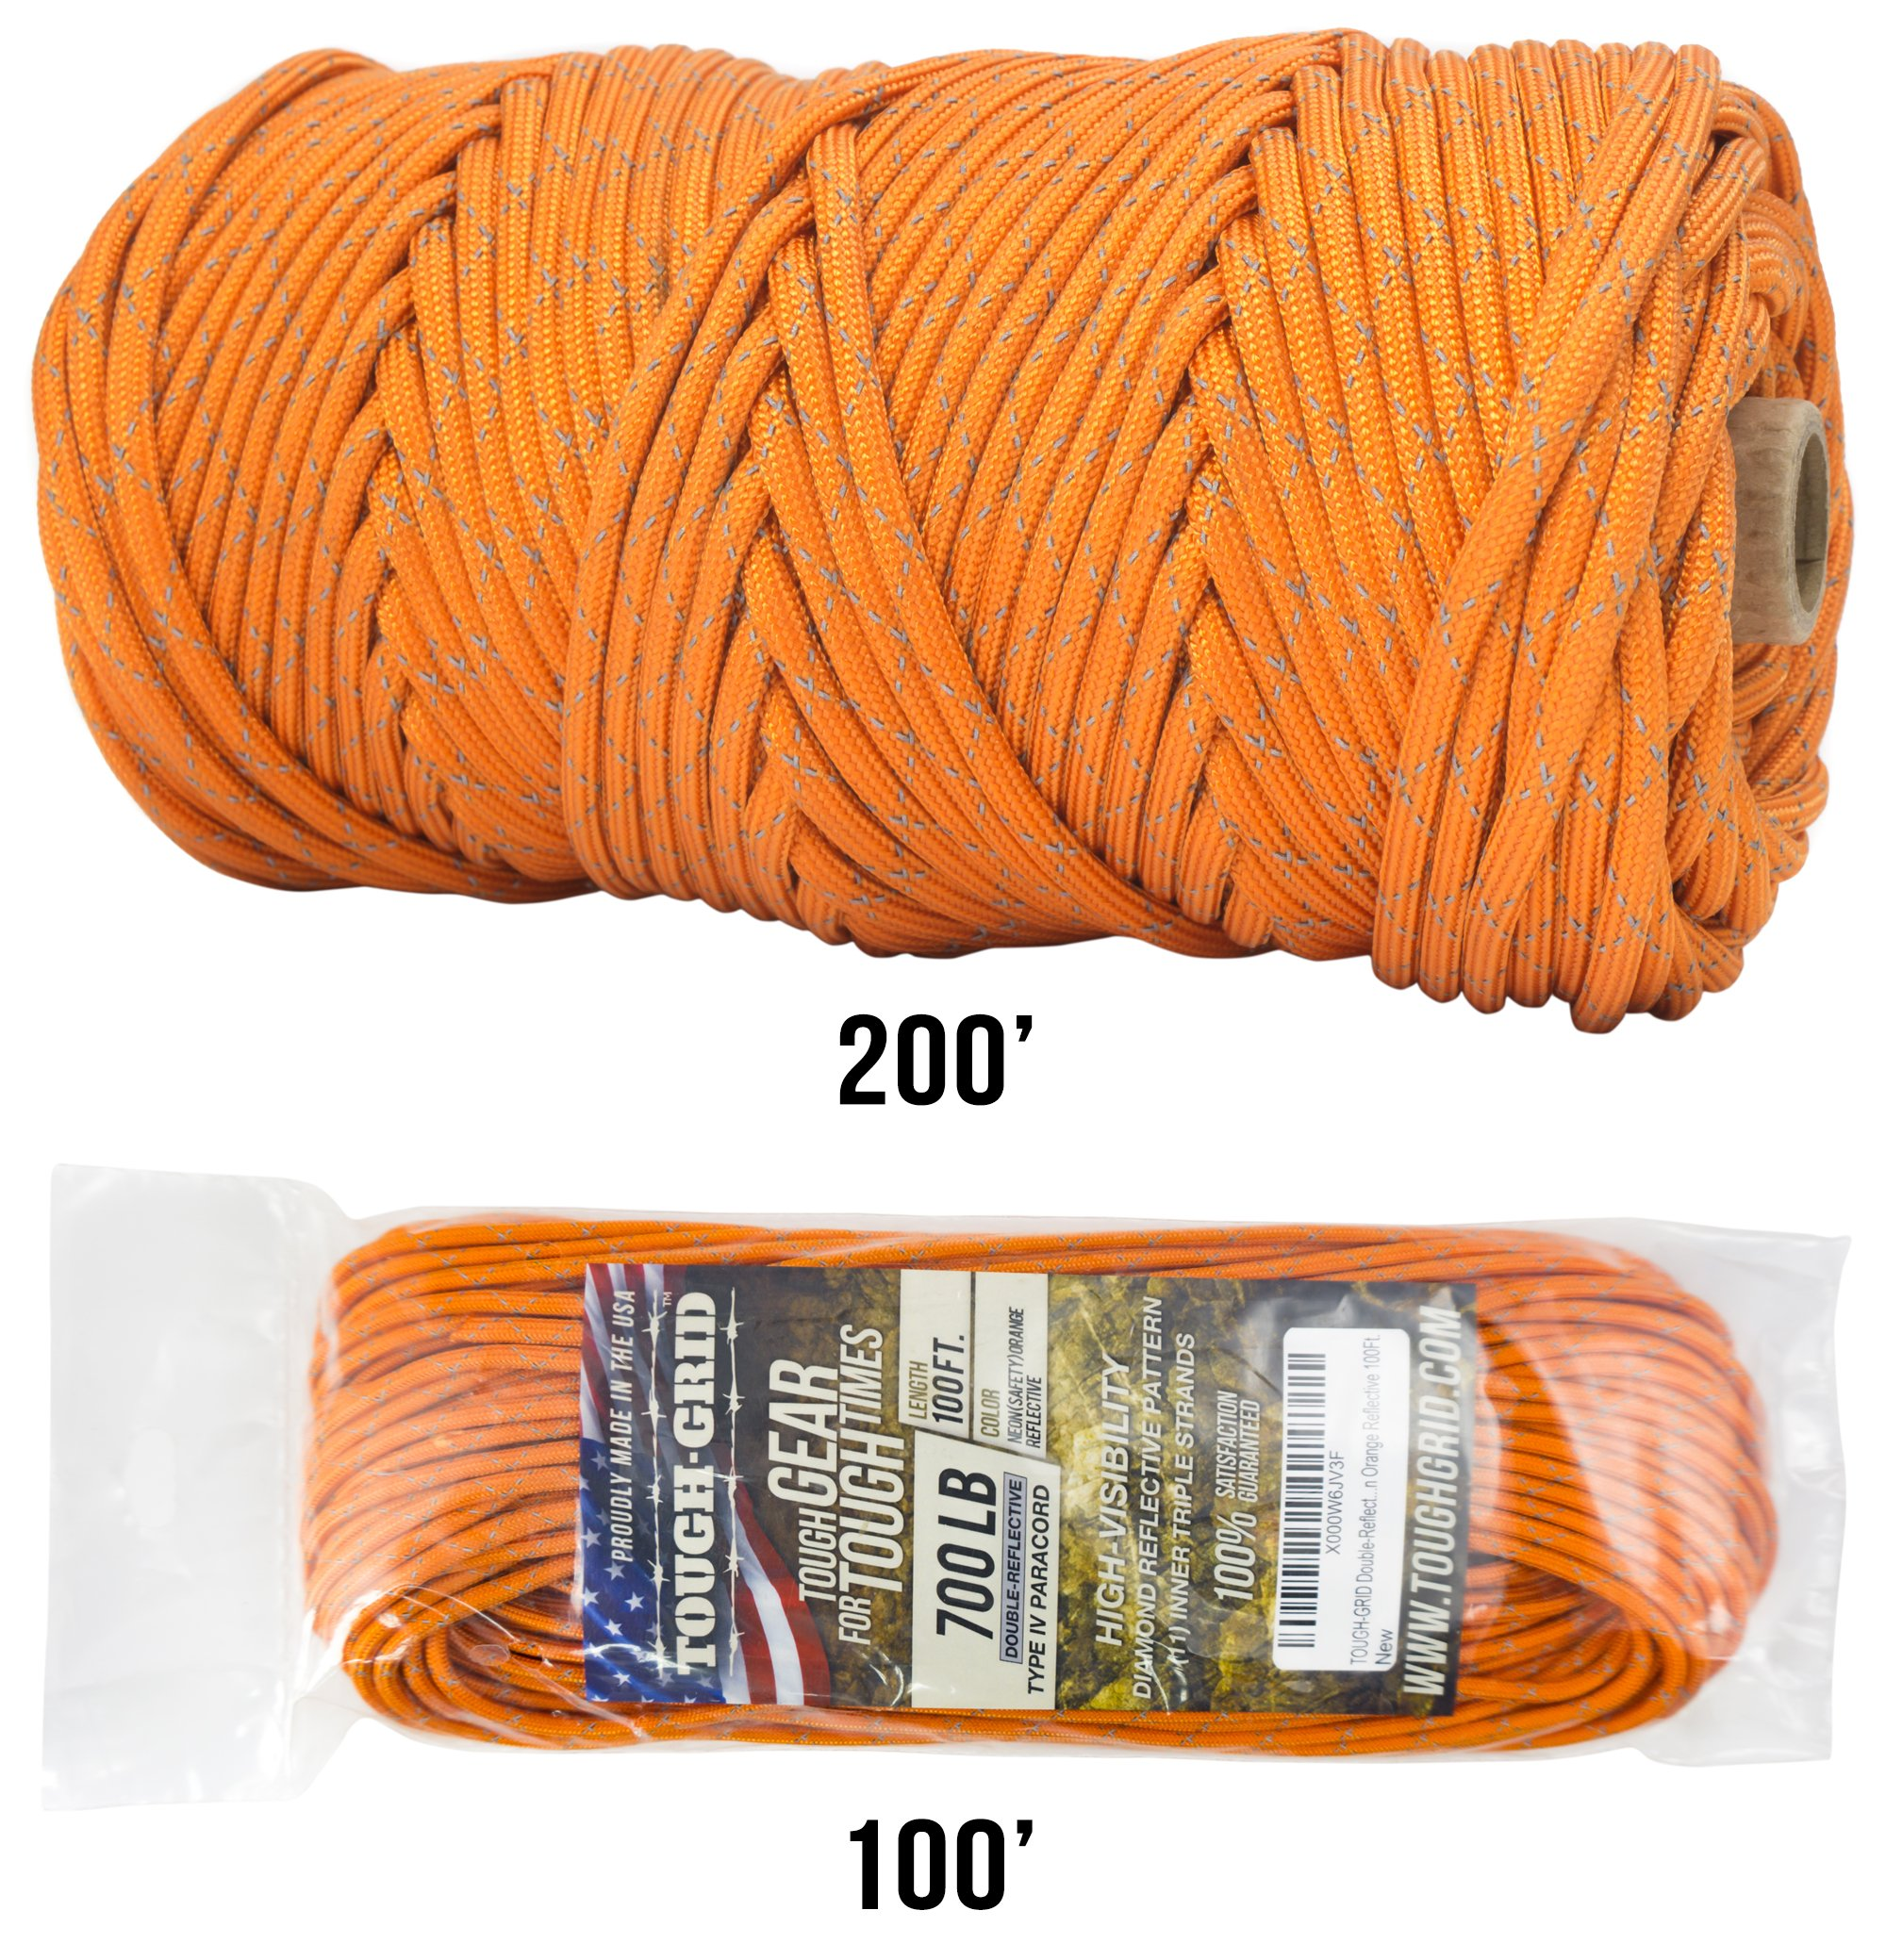 TOUGH-GRID New 700lb Double-Reflective Paracord/Parachute Cord - 2 Vibrant Retro-Reflective Strands for The Ultimate High-Visibility Cord - 100% Nylon - Made in USA - 100Ft. Neon Orange Reflective by TOUGH-GRID (Image #1)